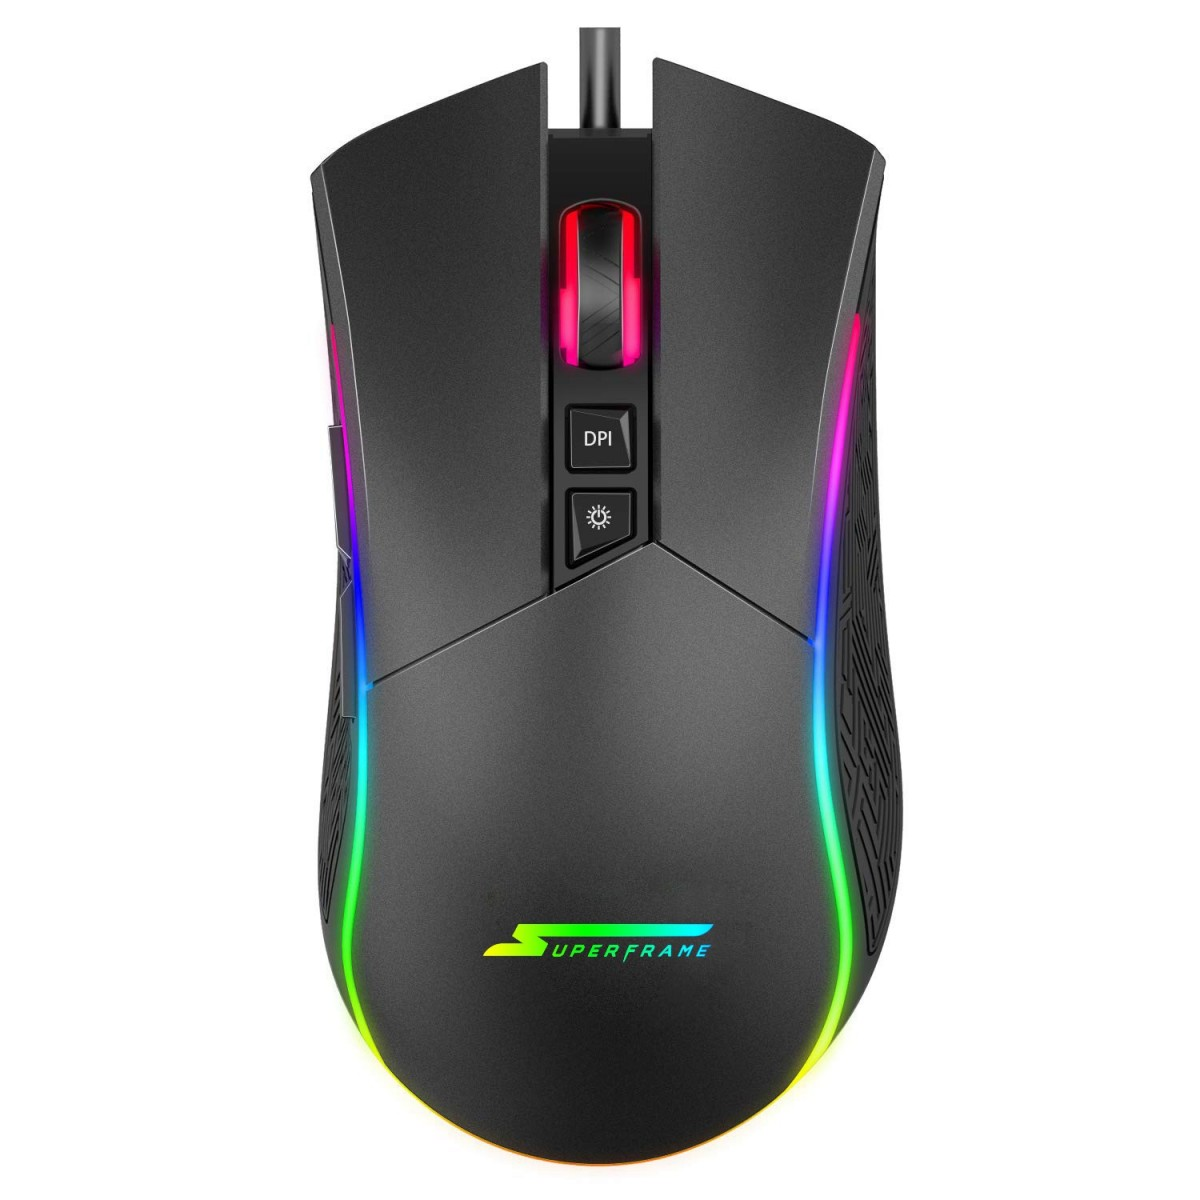 MOUSE GAMER SUPERFRAME BOSS 10000 DPI RGB 7 BOTOES  - Fatality